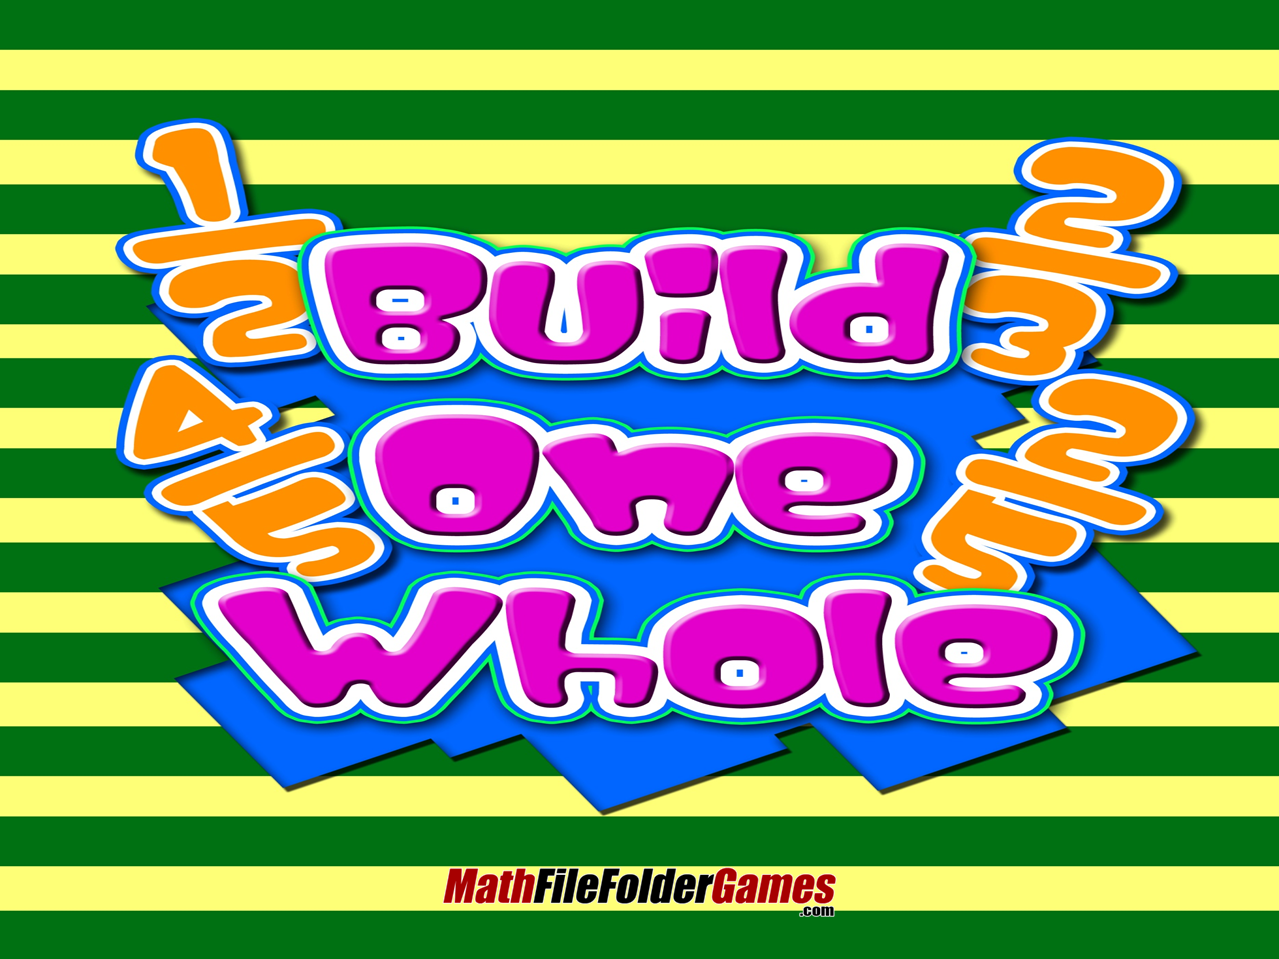 Build One Whole